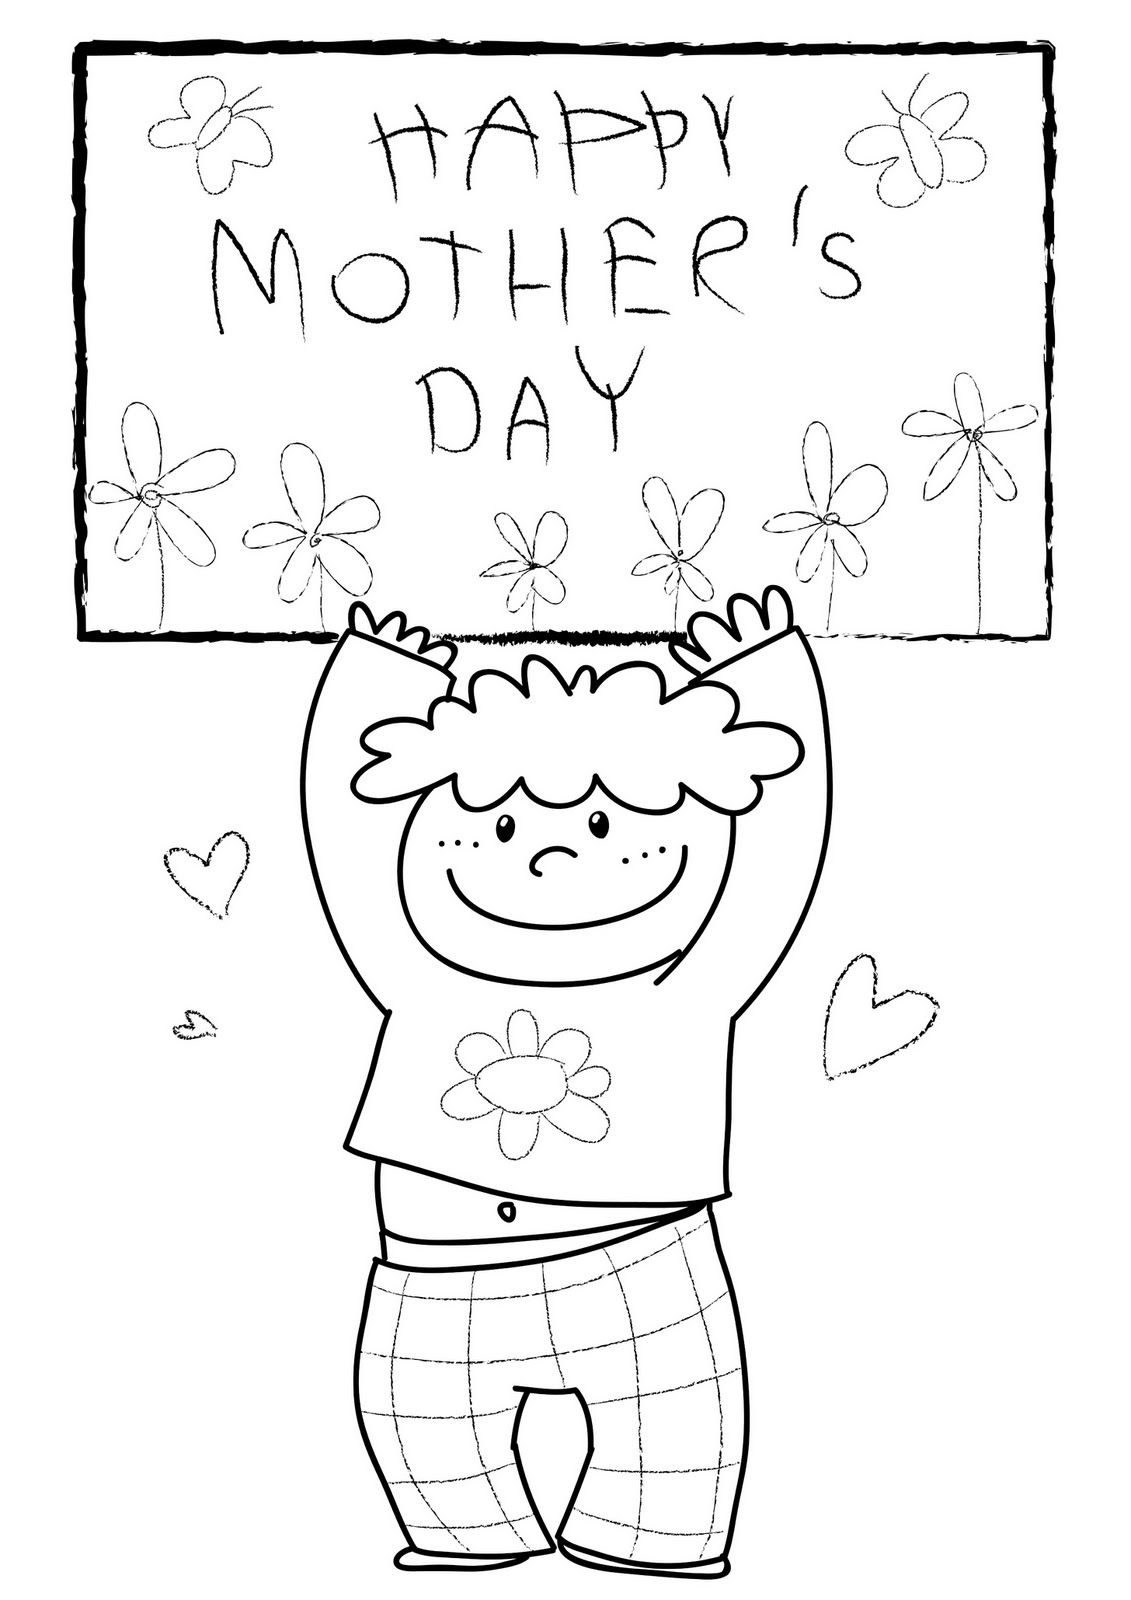 Childrens fathers day coloring pages - Mothers Day Coloring Pages For Children Kids Toddlers Happy Mothers